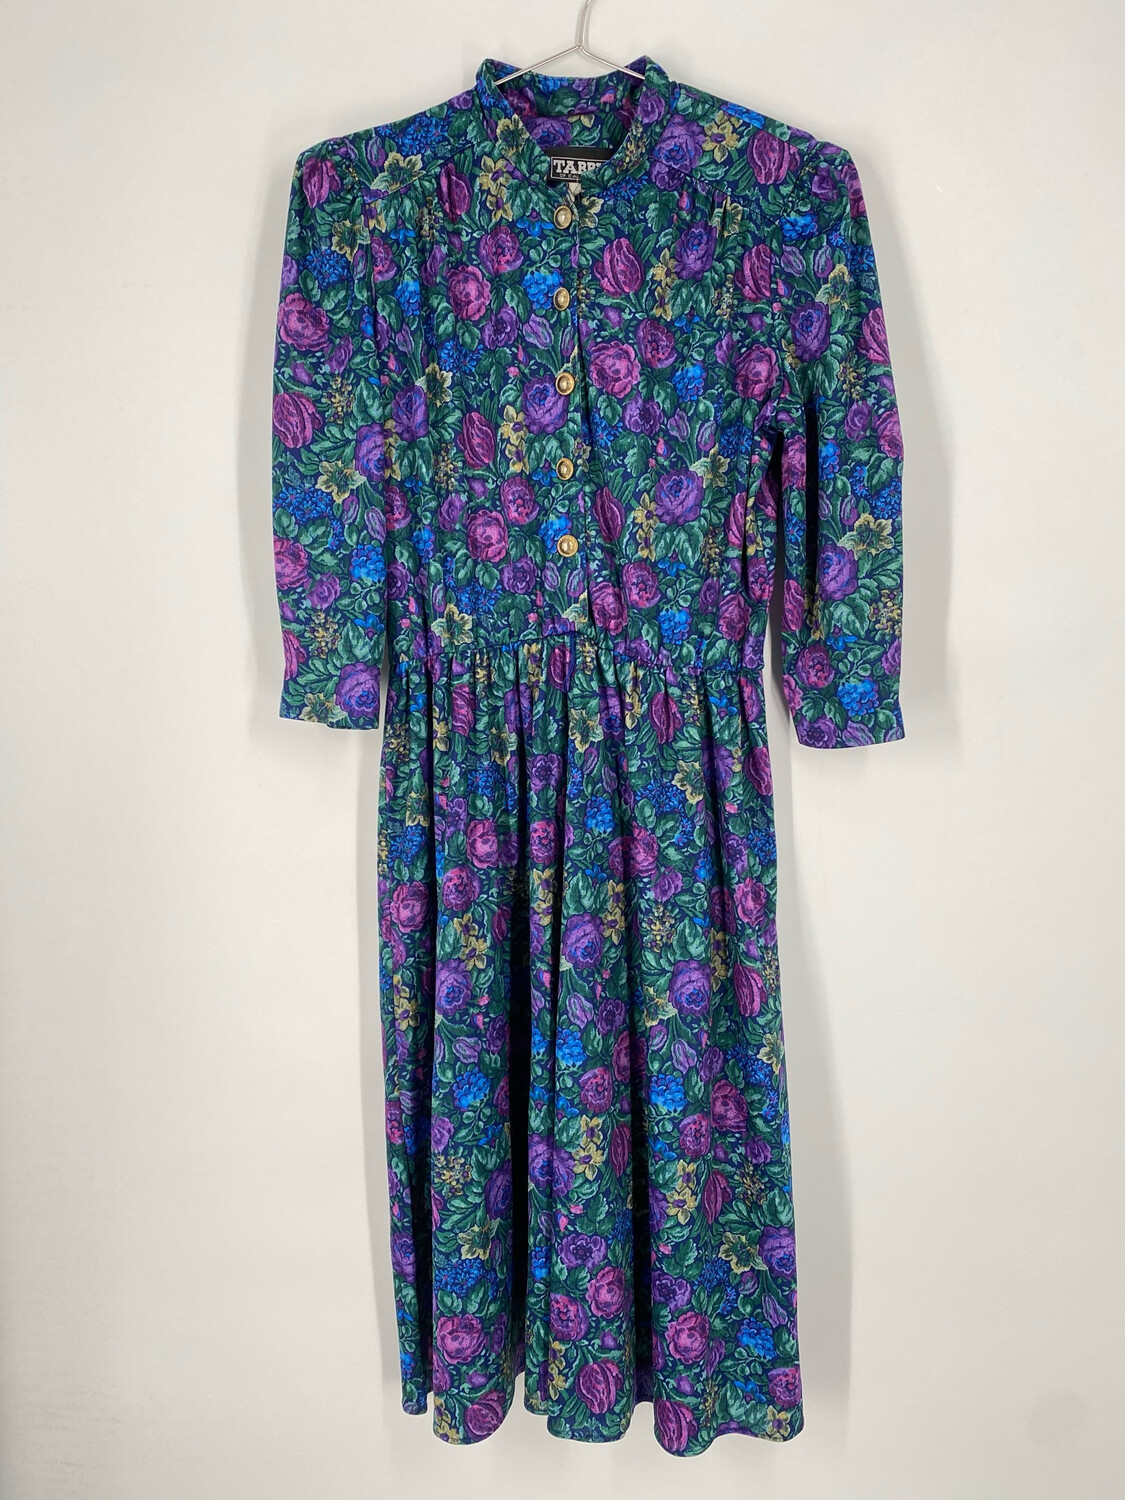 Tabby Of California Floral Long Sleeve Button Up Dress Size L